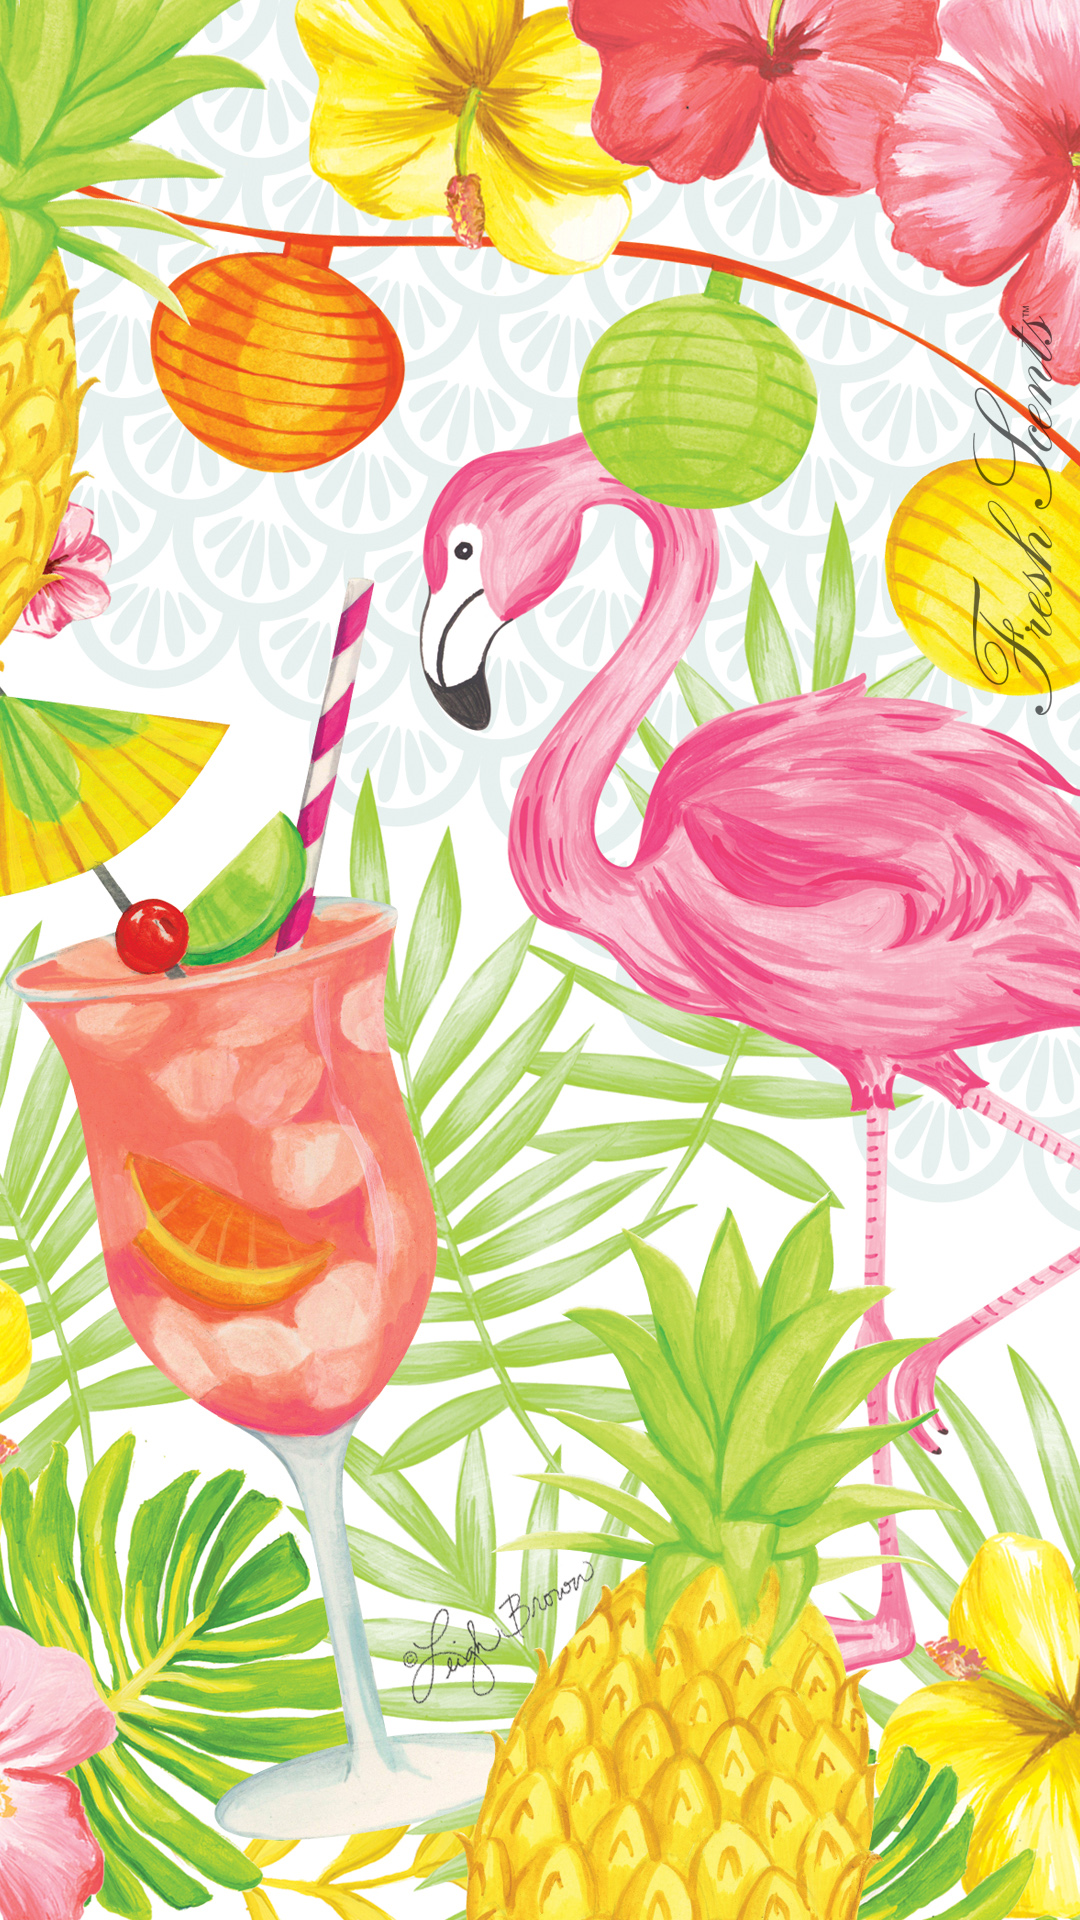 Carry-the-beautiful-Flamingo-Party-sachet-artwork-with-you-for-a-little-taste-of-summer-on-your-phon-wallpaper-wpc5803295